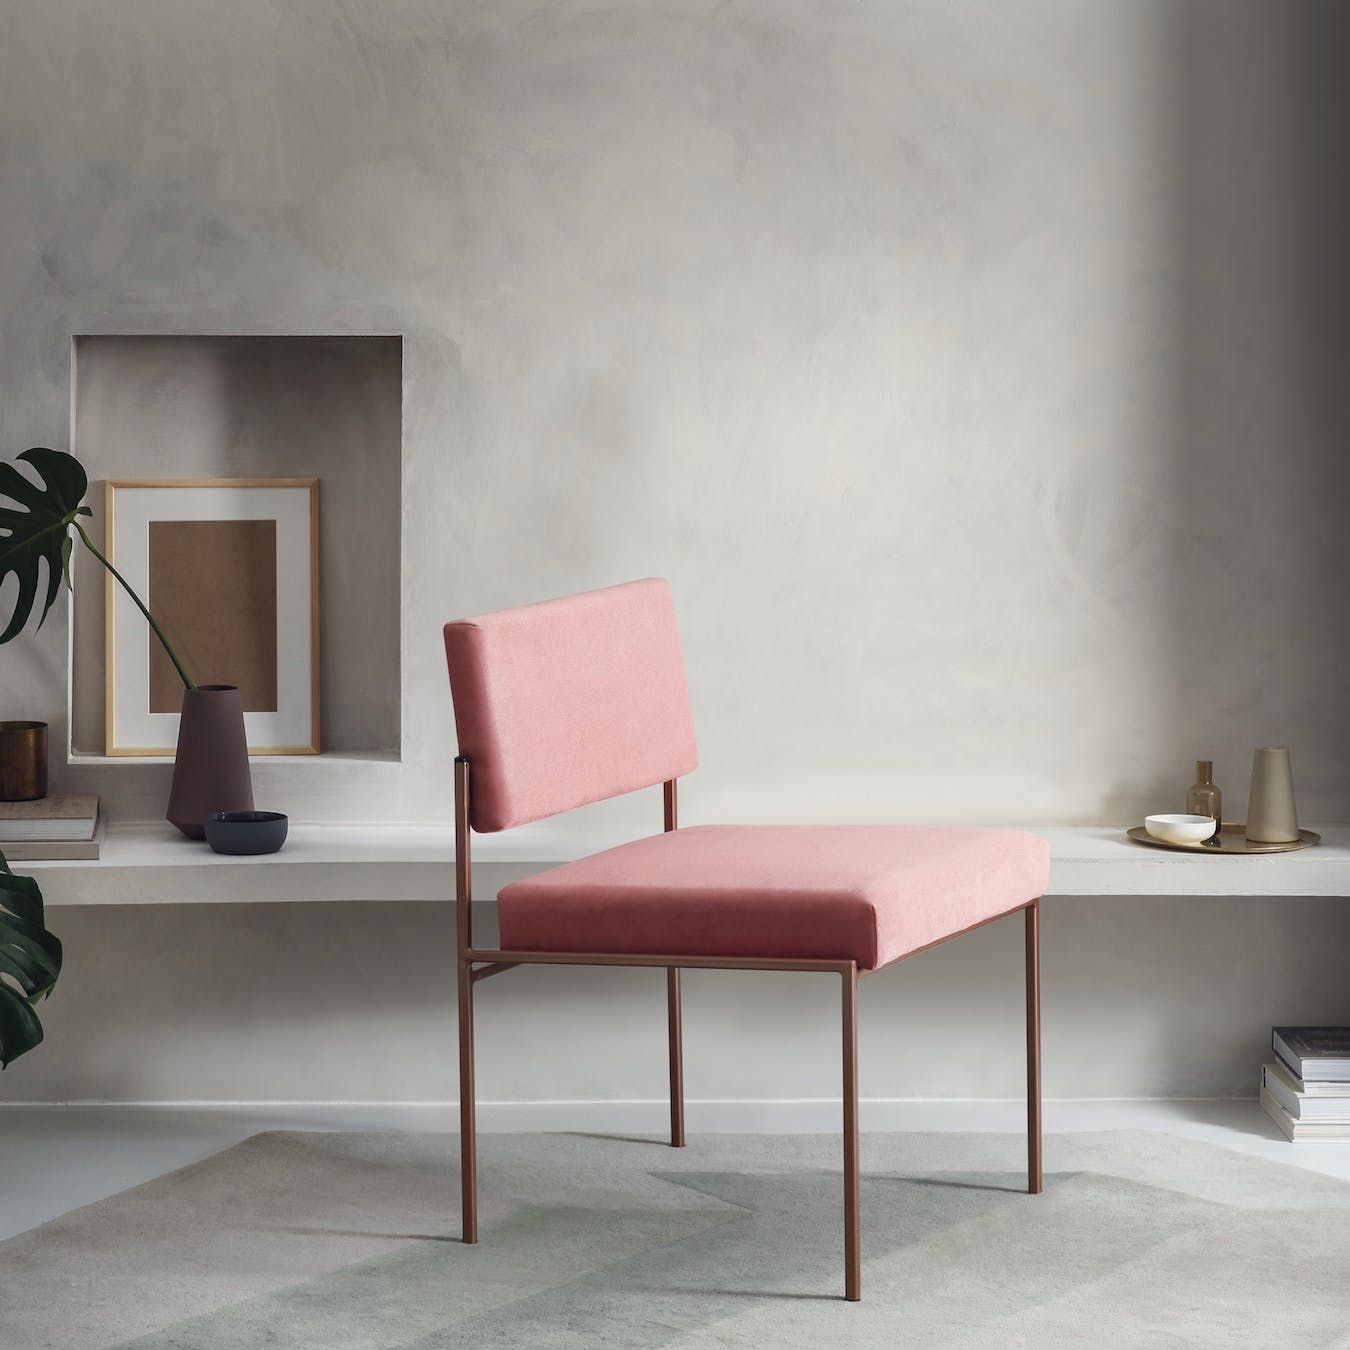 Cube Chair Copper - Velvet-Line in Vintage-Pink